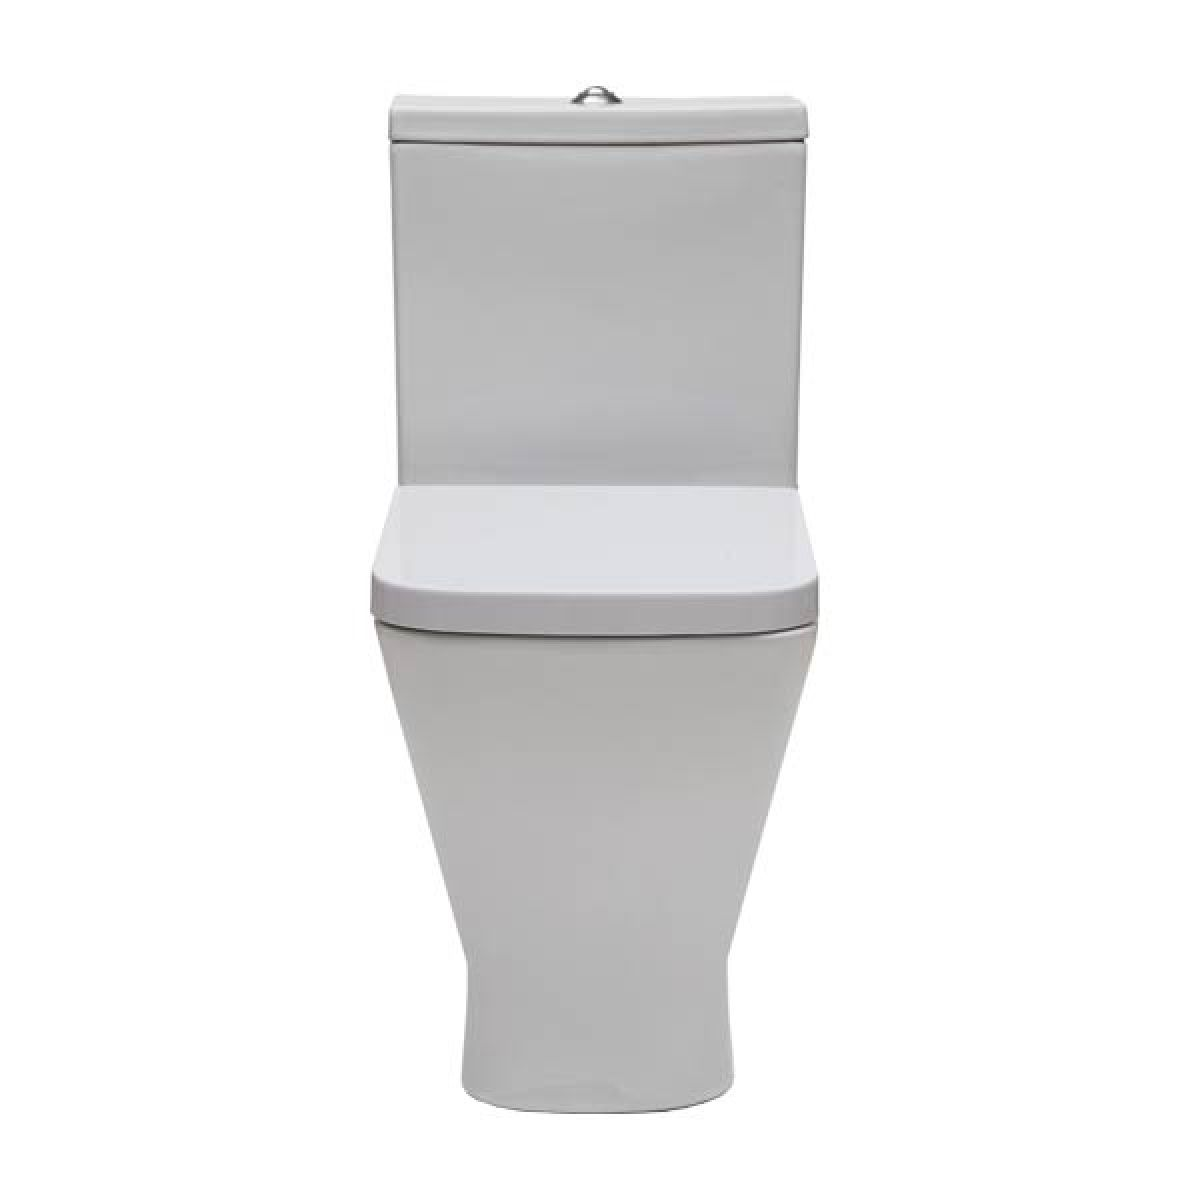 Frontline F60S Close Coupled Toilet with Soft Close Seat